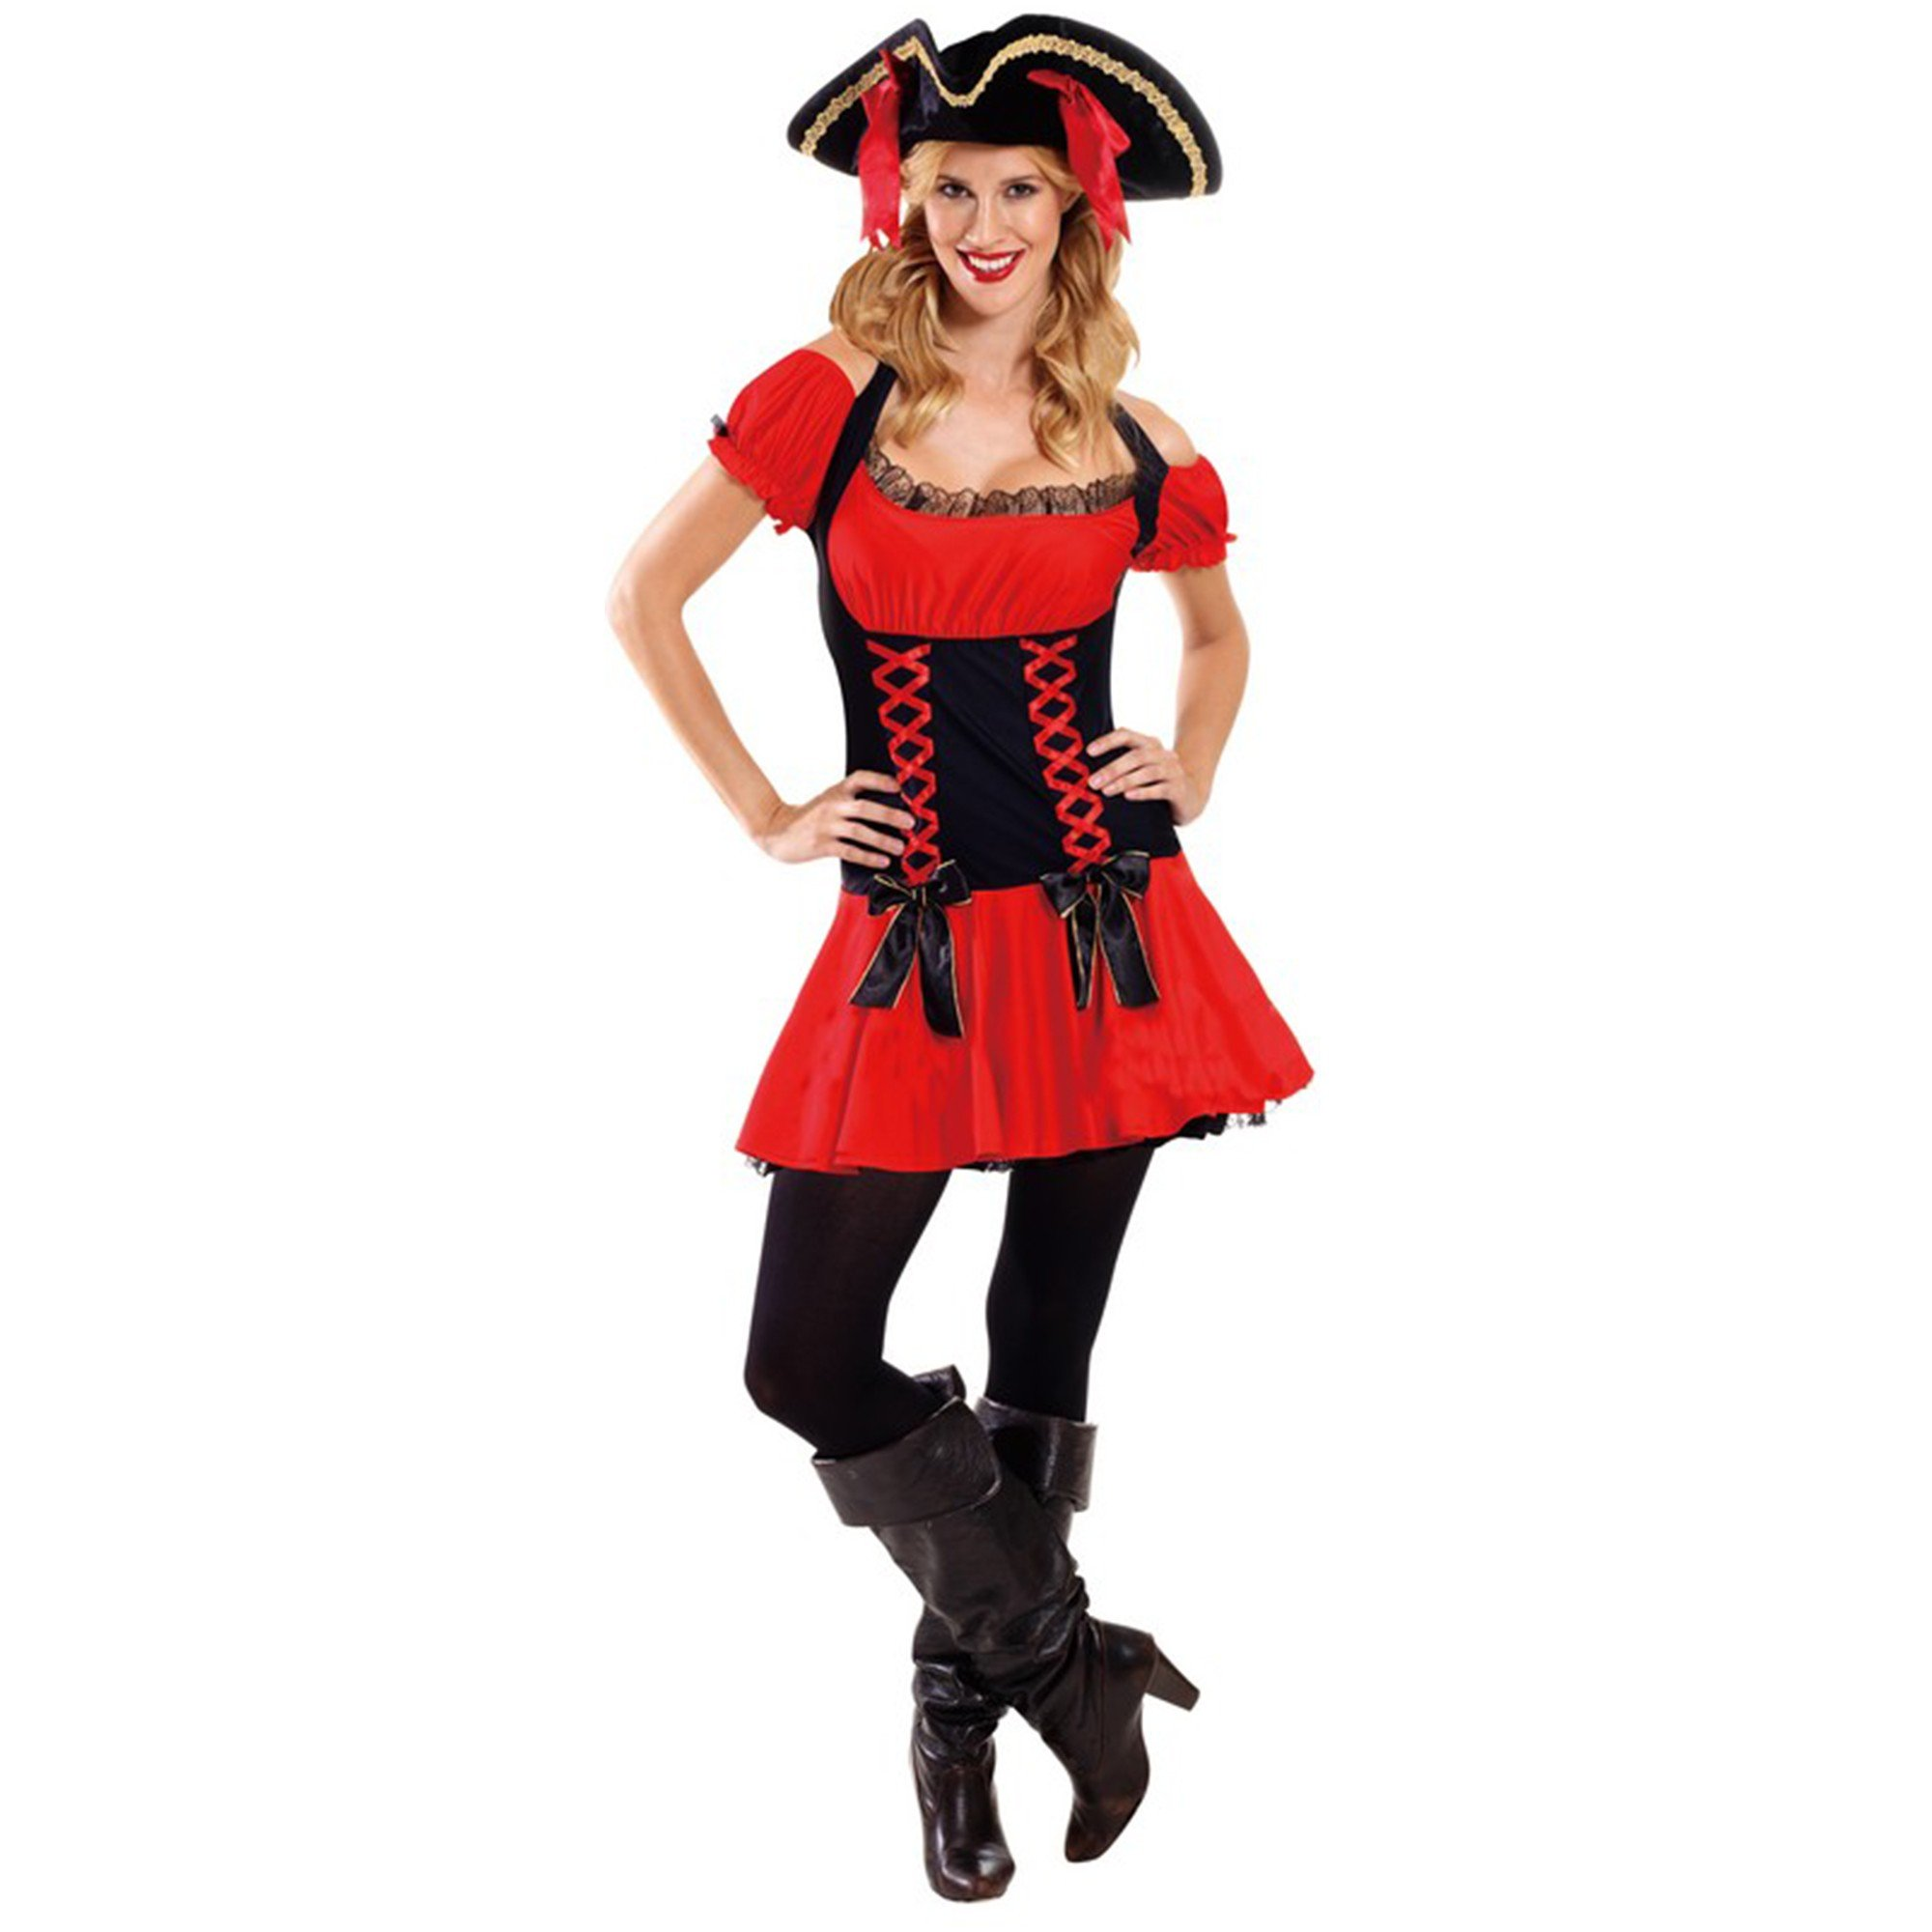 Deluxe Pirate Girl Costume (Small)  - Adult